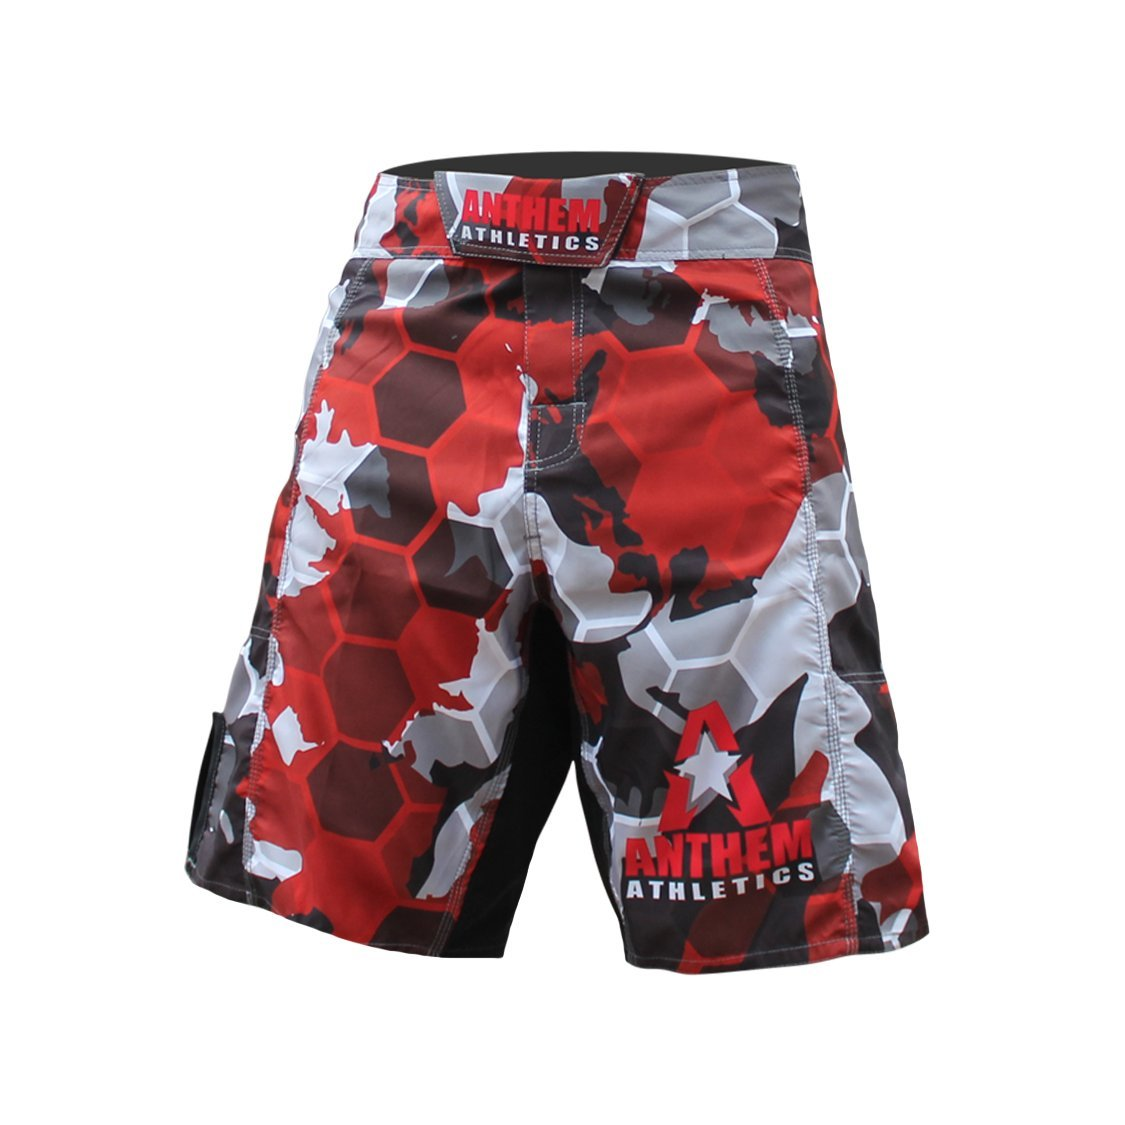 Anthem Athletics RESILIENCE MMA Shorts - Red Camo Hex - 38'' by Anthem Athletics